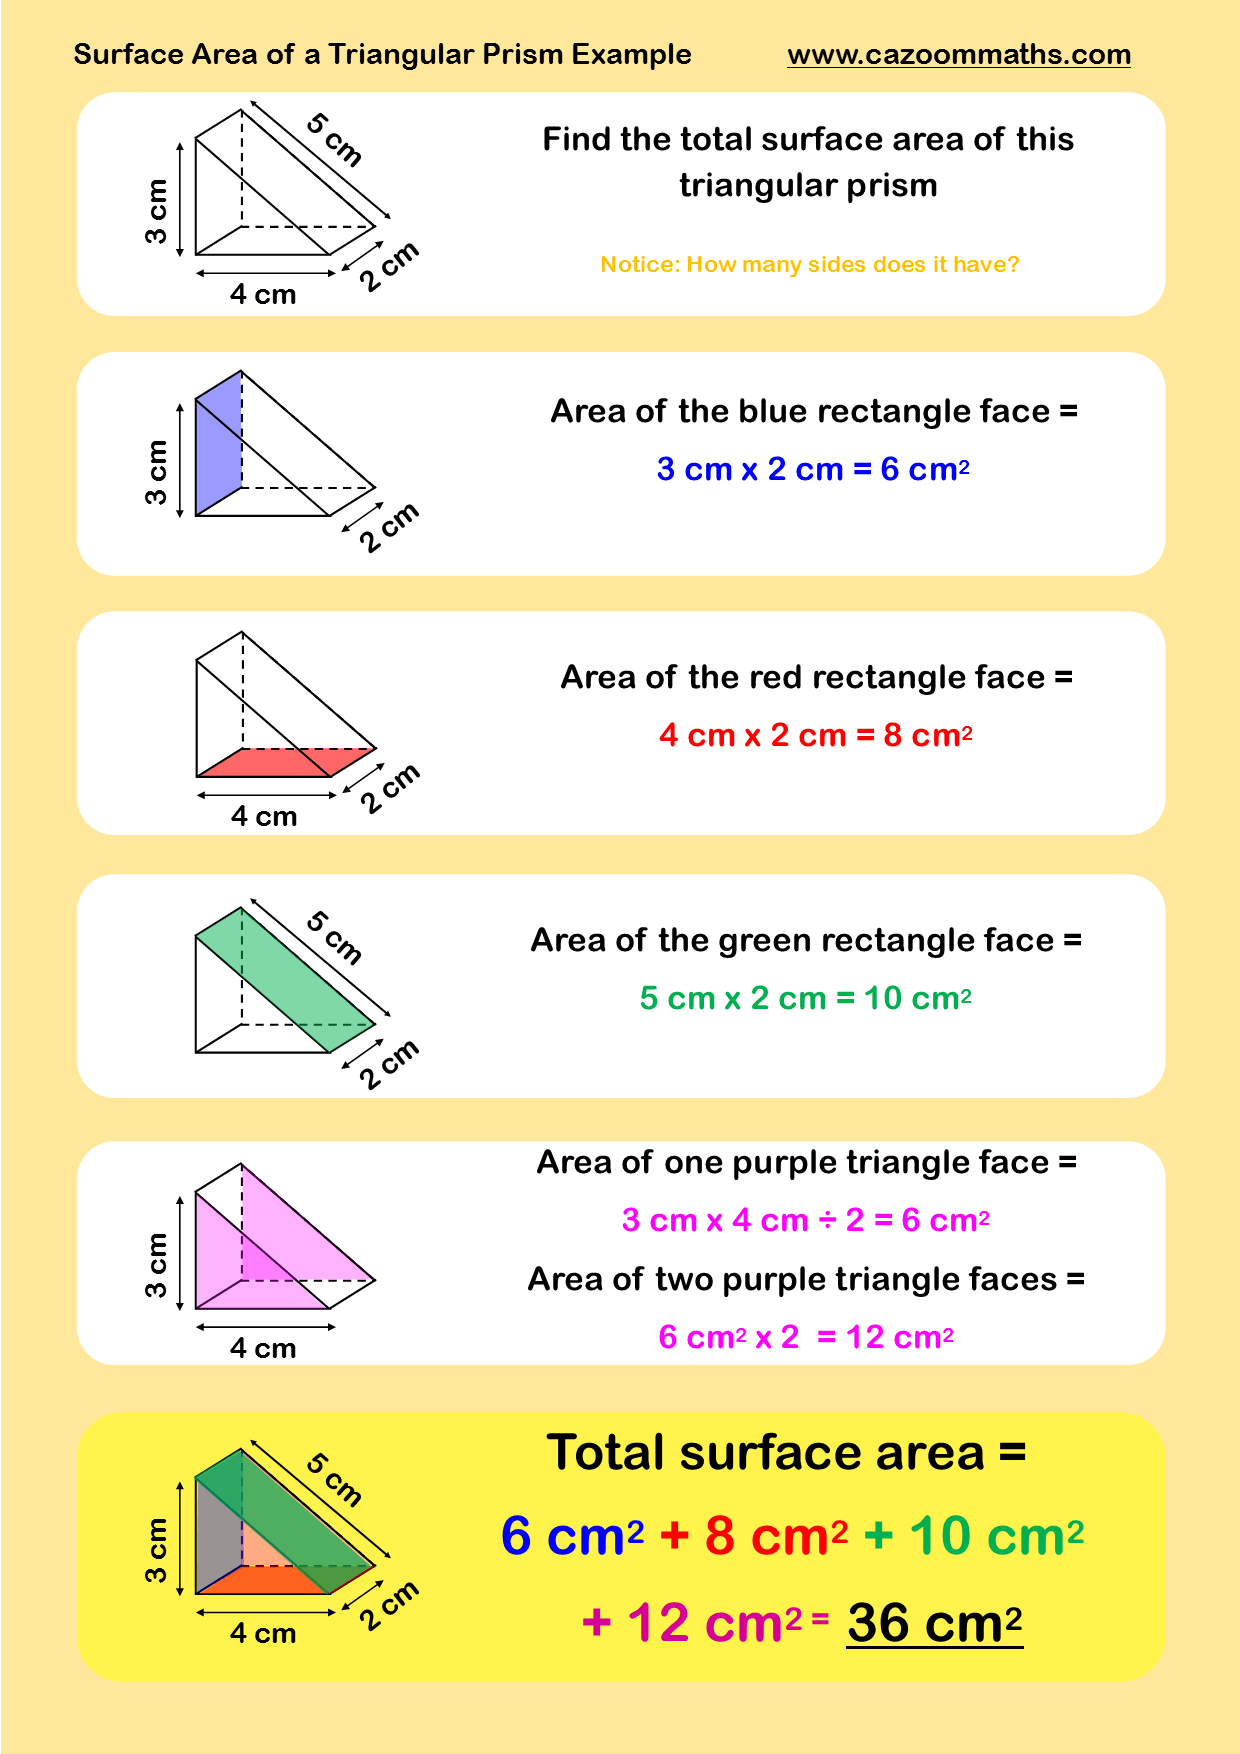 GCSE Maths Geometry Worksheets | Surface area, Printable maths ...